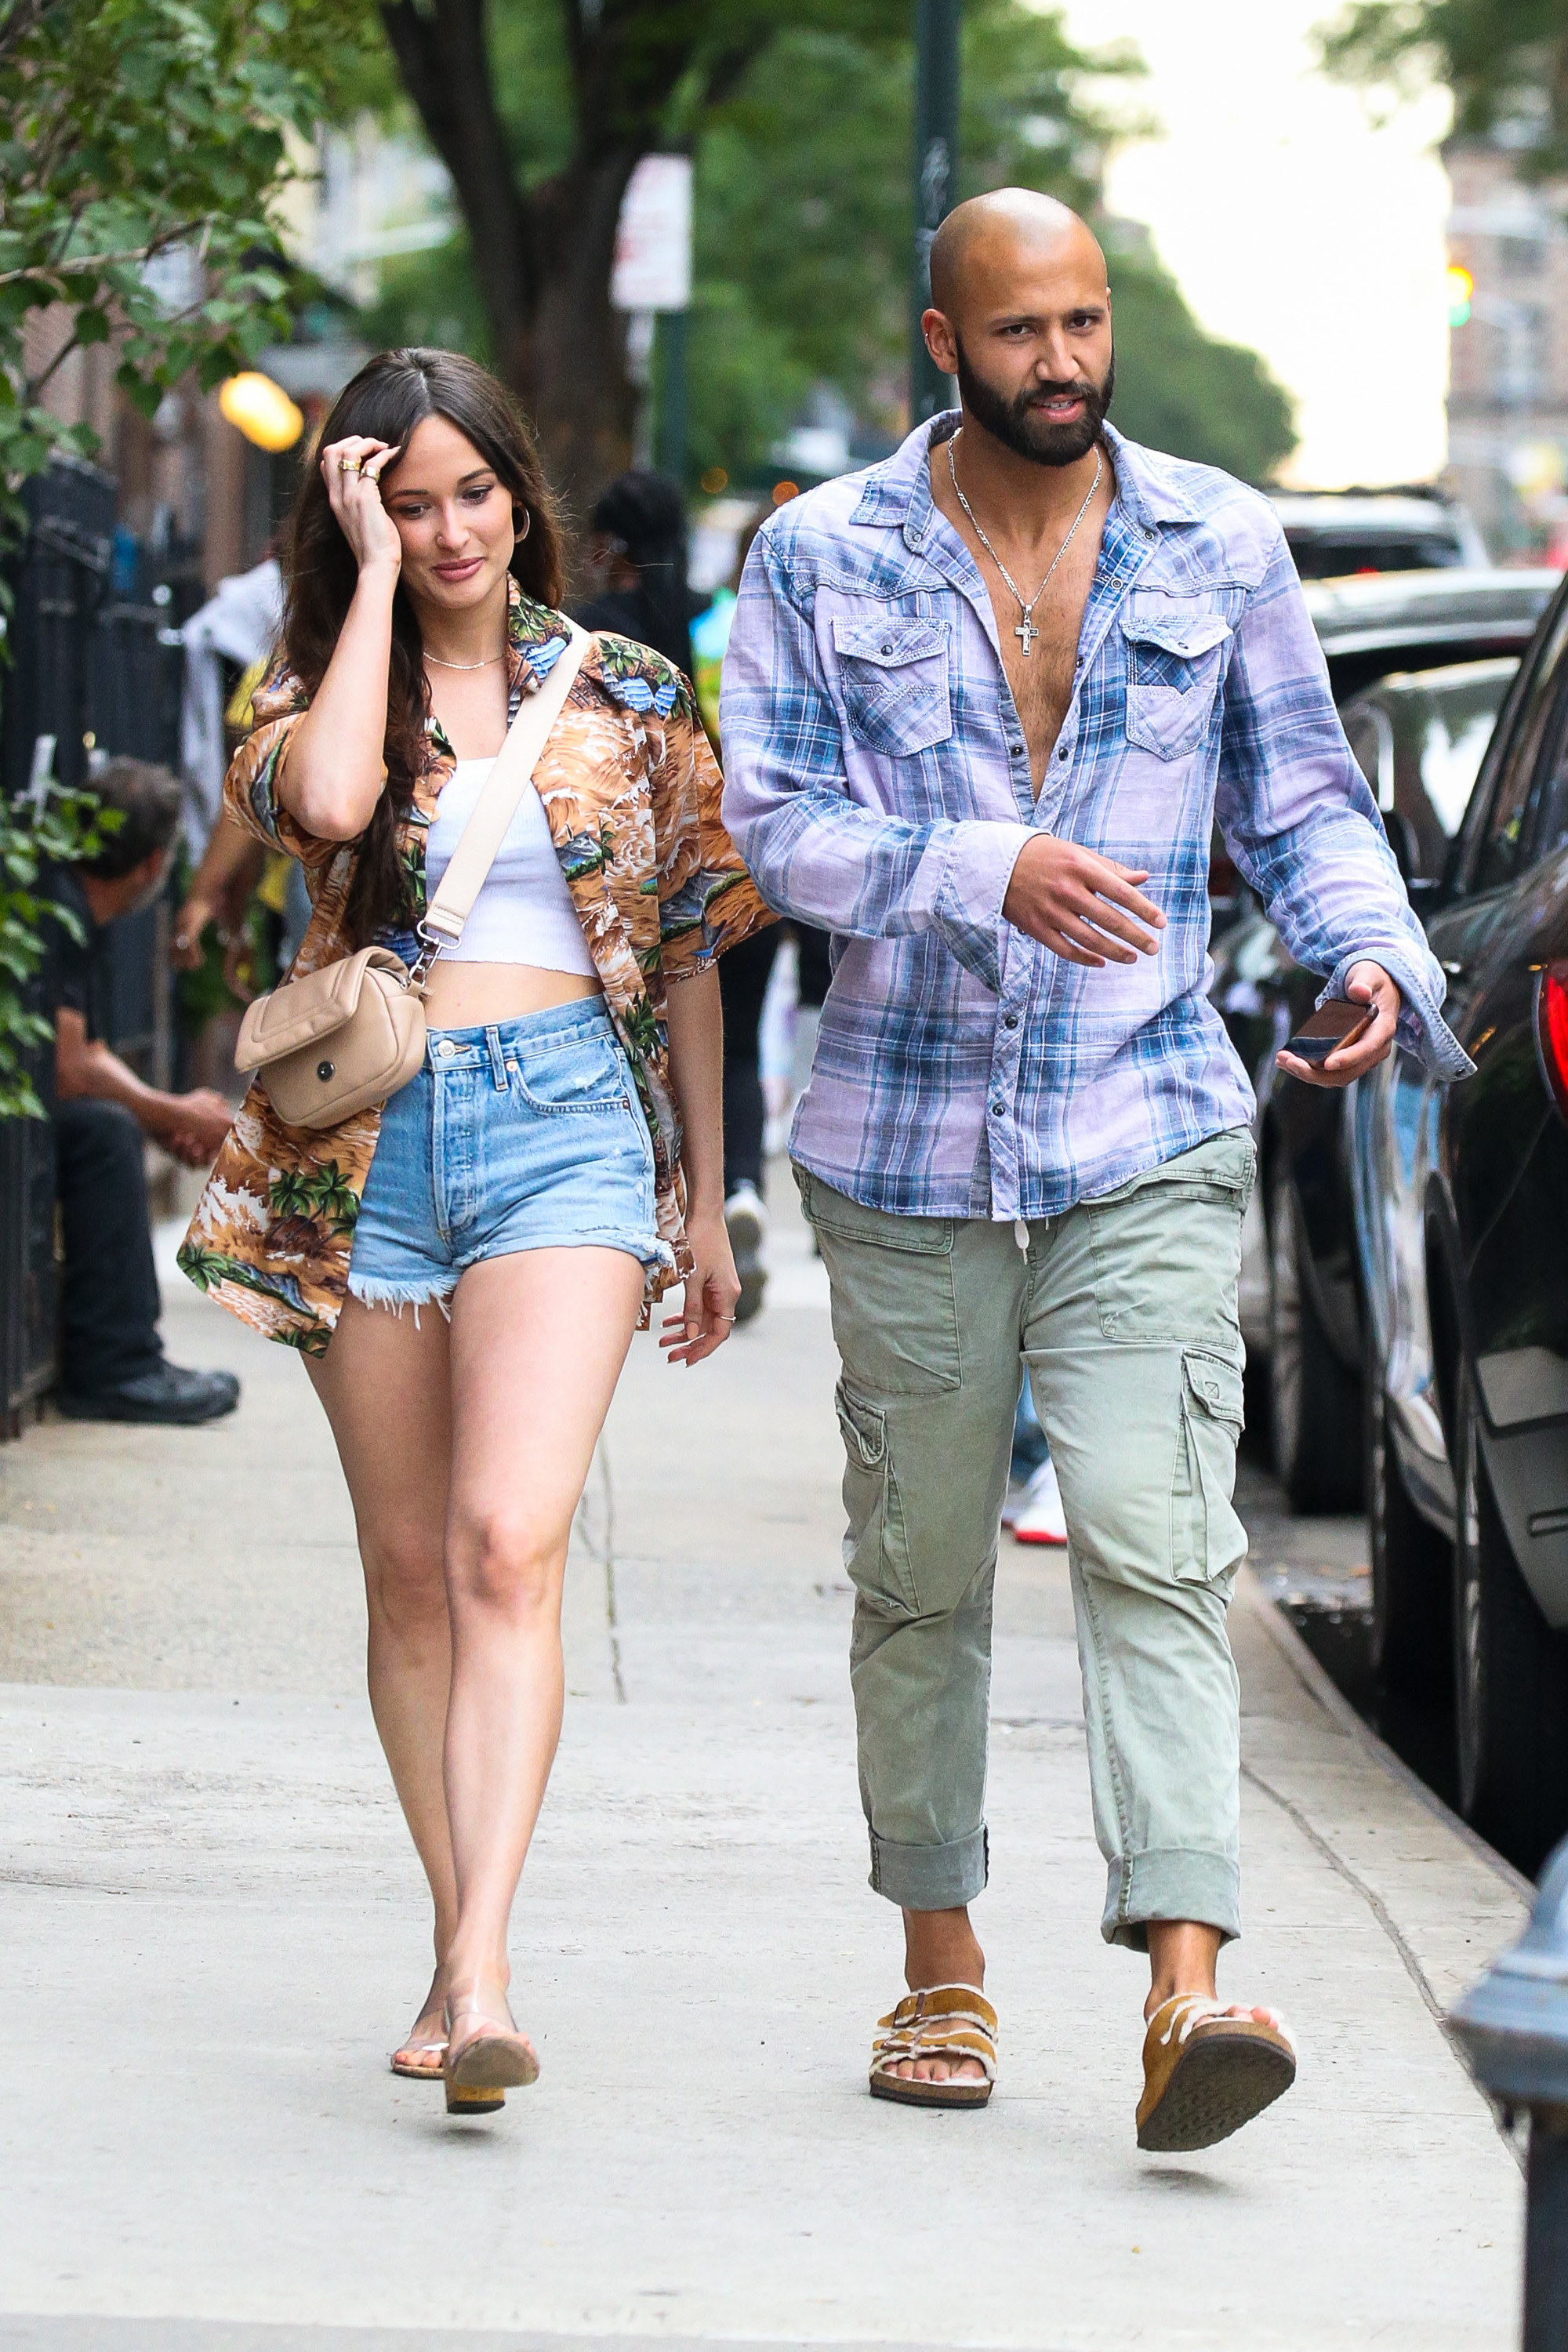 Kacey and Cole stick close together while on a walk in new york